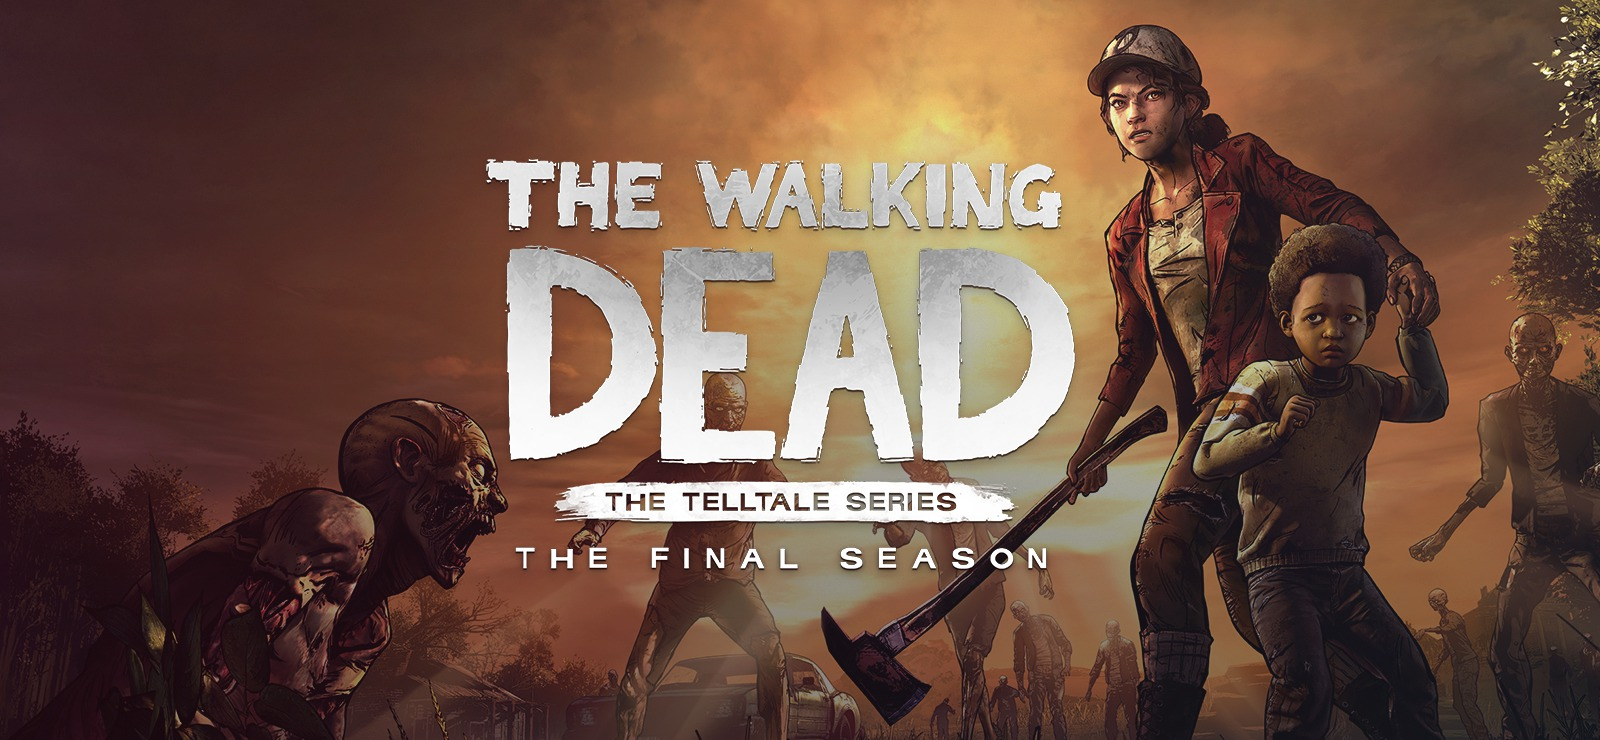 The Walking Dead: The Final Season promó kép